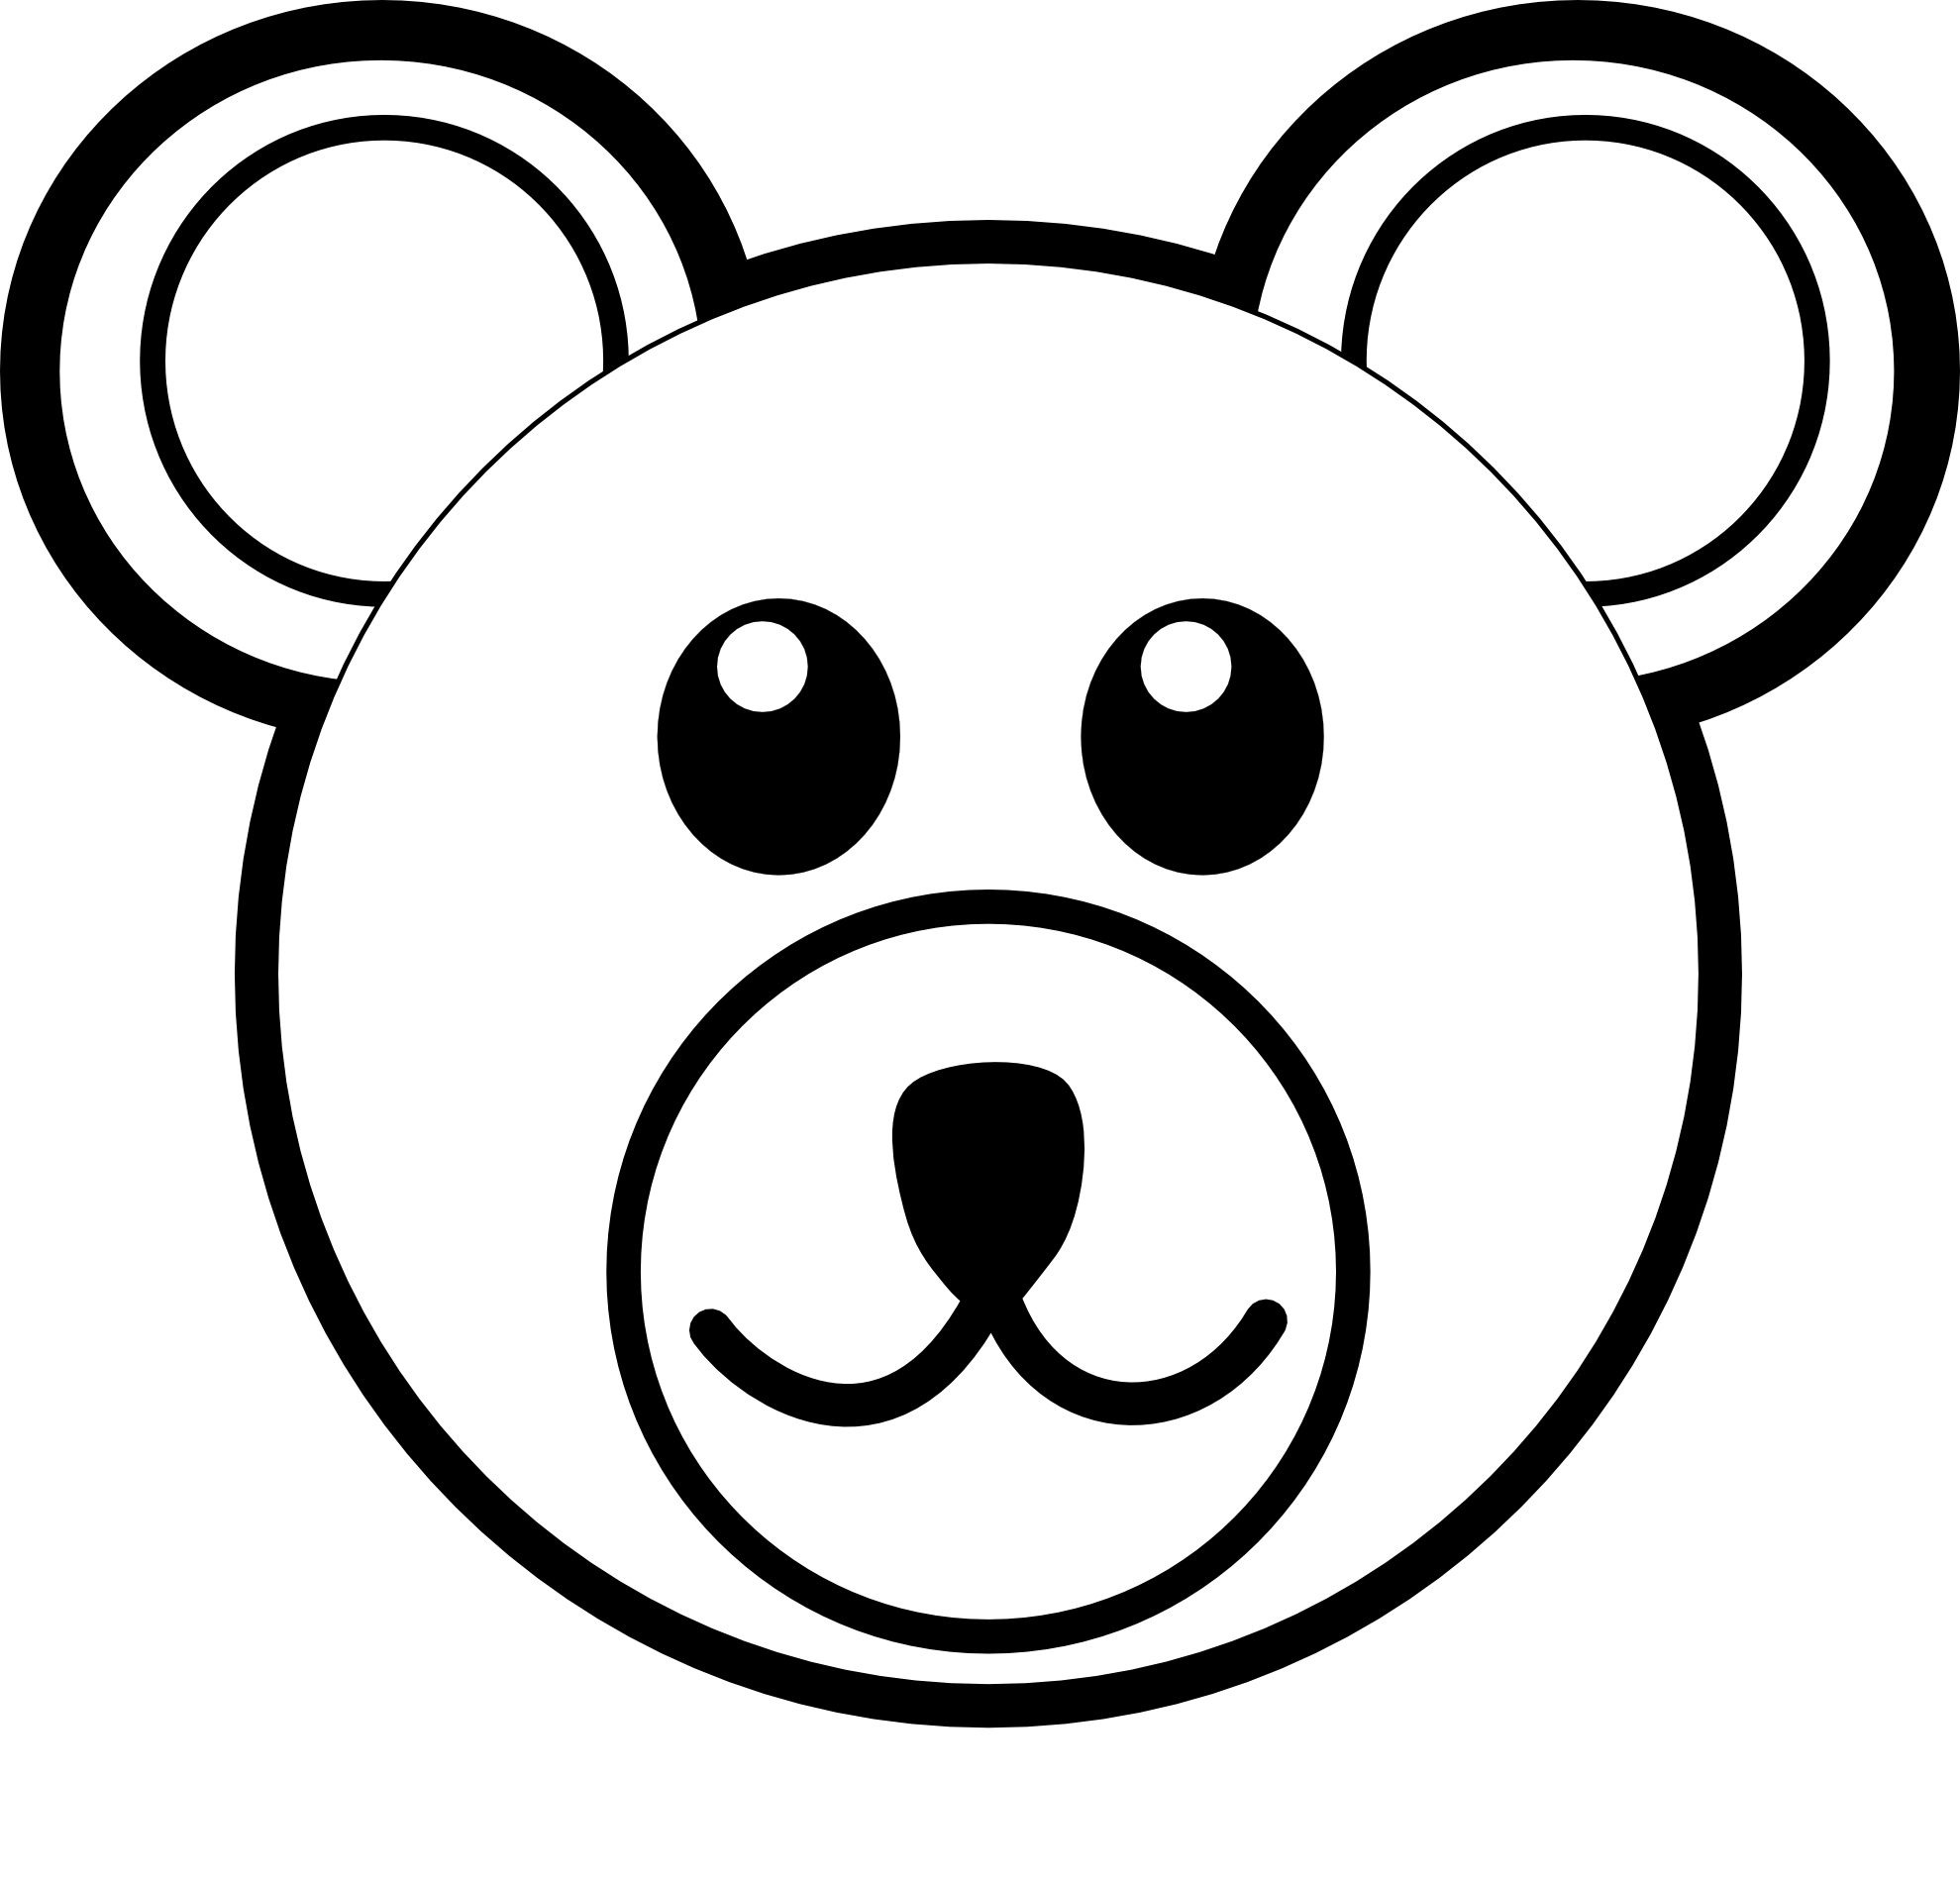 Drawing For Kids To Colour at GetDrawings.com | Free for personal ...